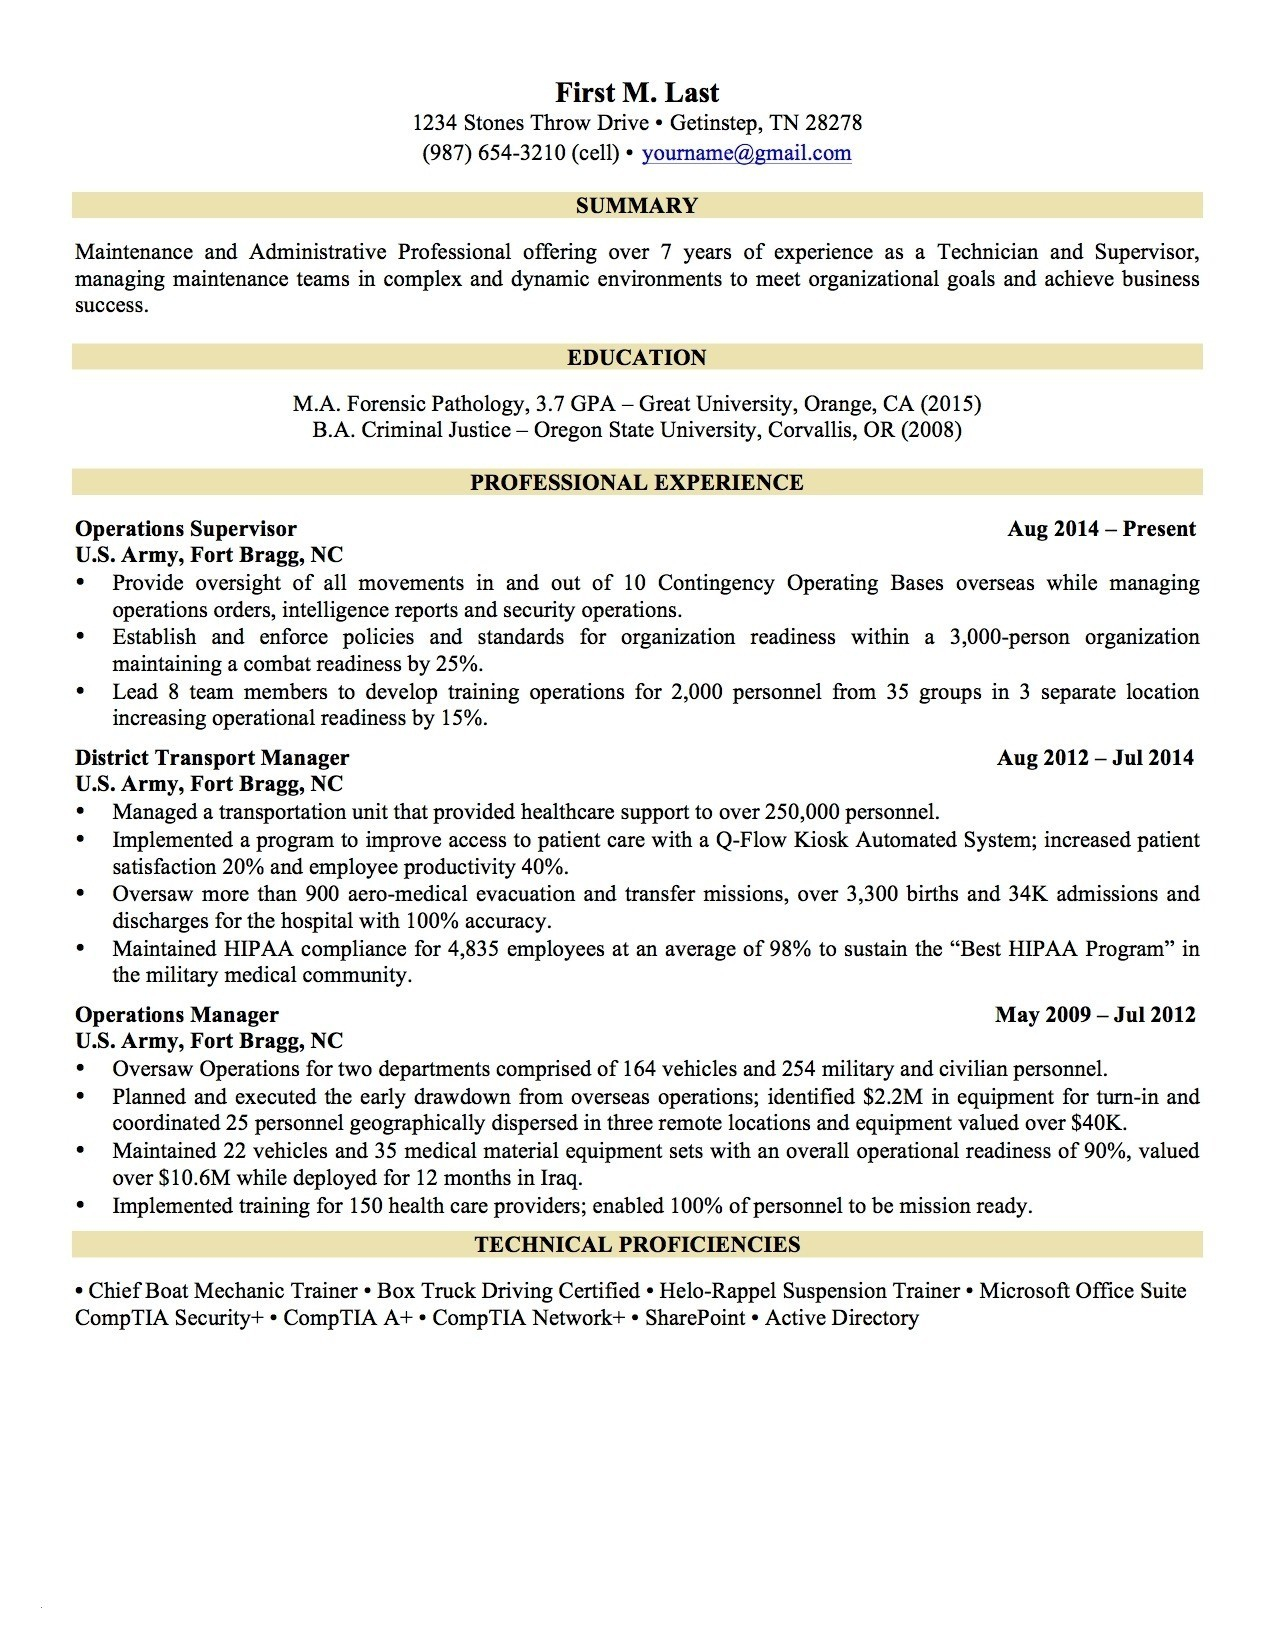 Military Experience On Resume - 18 Military Experience Resume Example